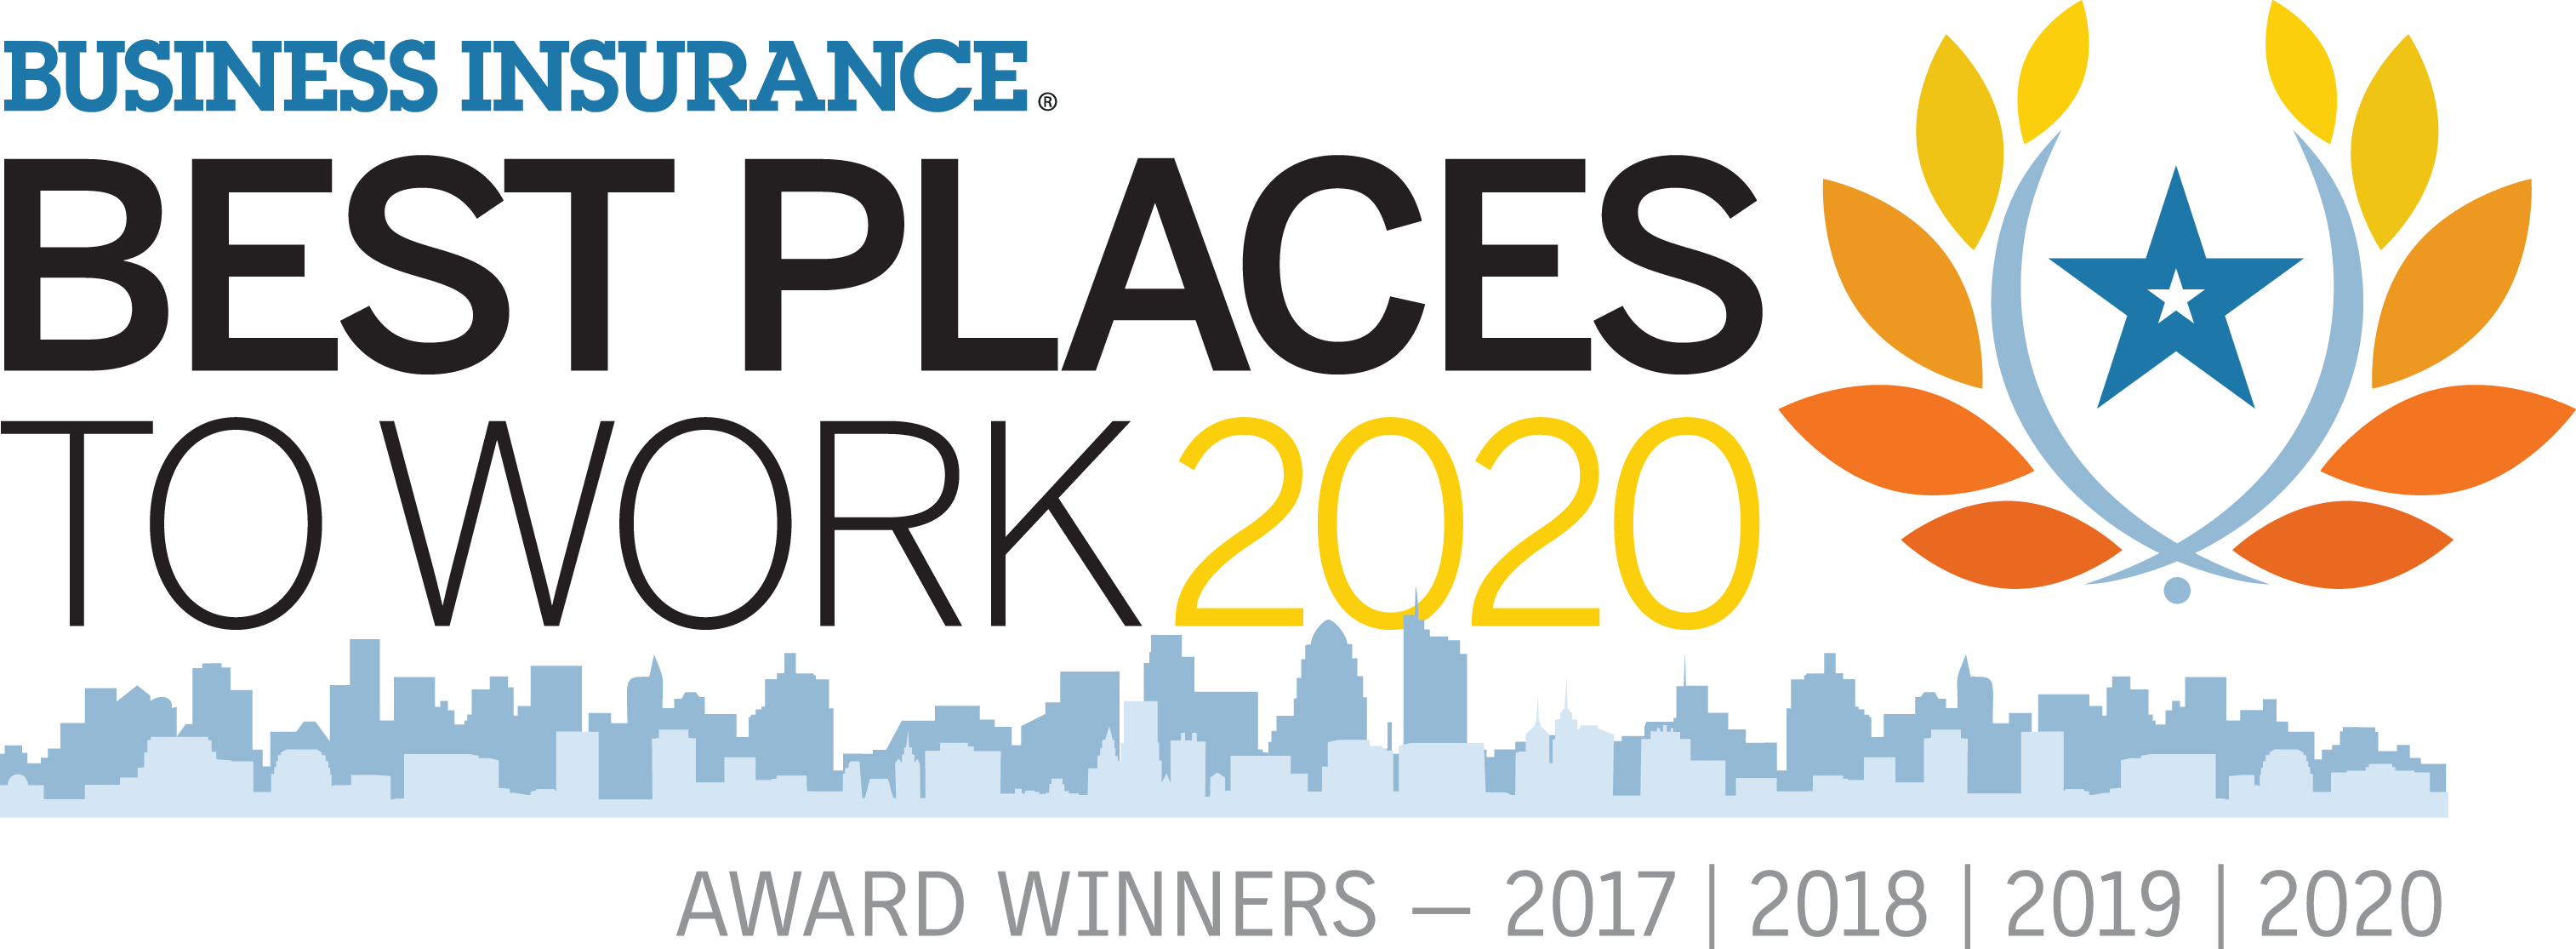 Best Insurance, Best Place to work 2020 award image